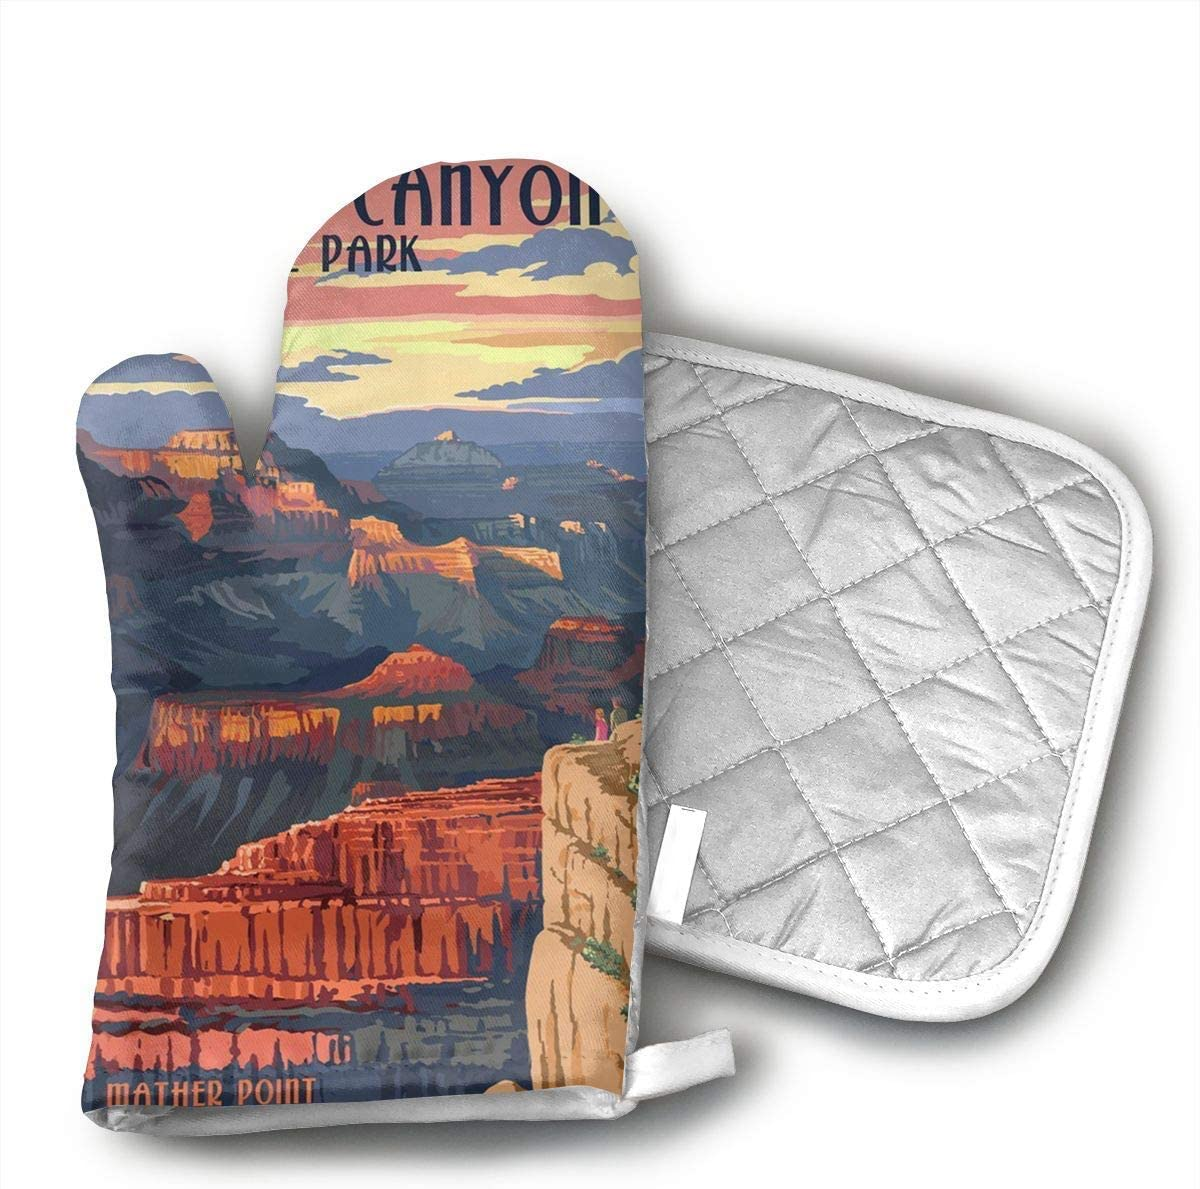 Grand Canyon National Park Oven Mitts and Pot Holders Set with Polyester Cotton Non-Slip Grip, Heat Resistant, Oven Gloves for BBQ Cooking Baking, Grilling